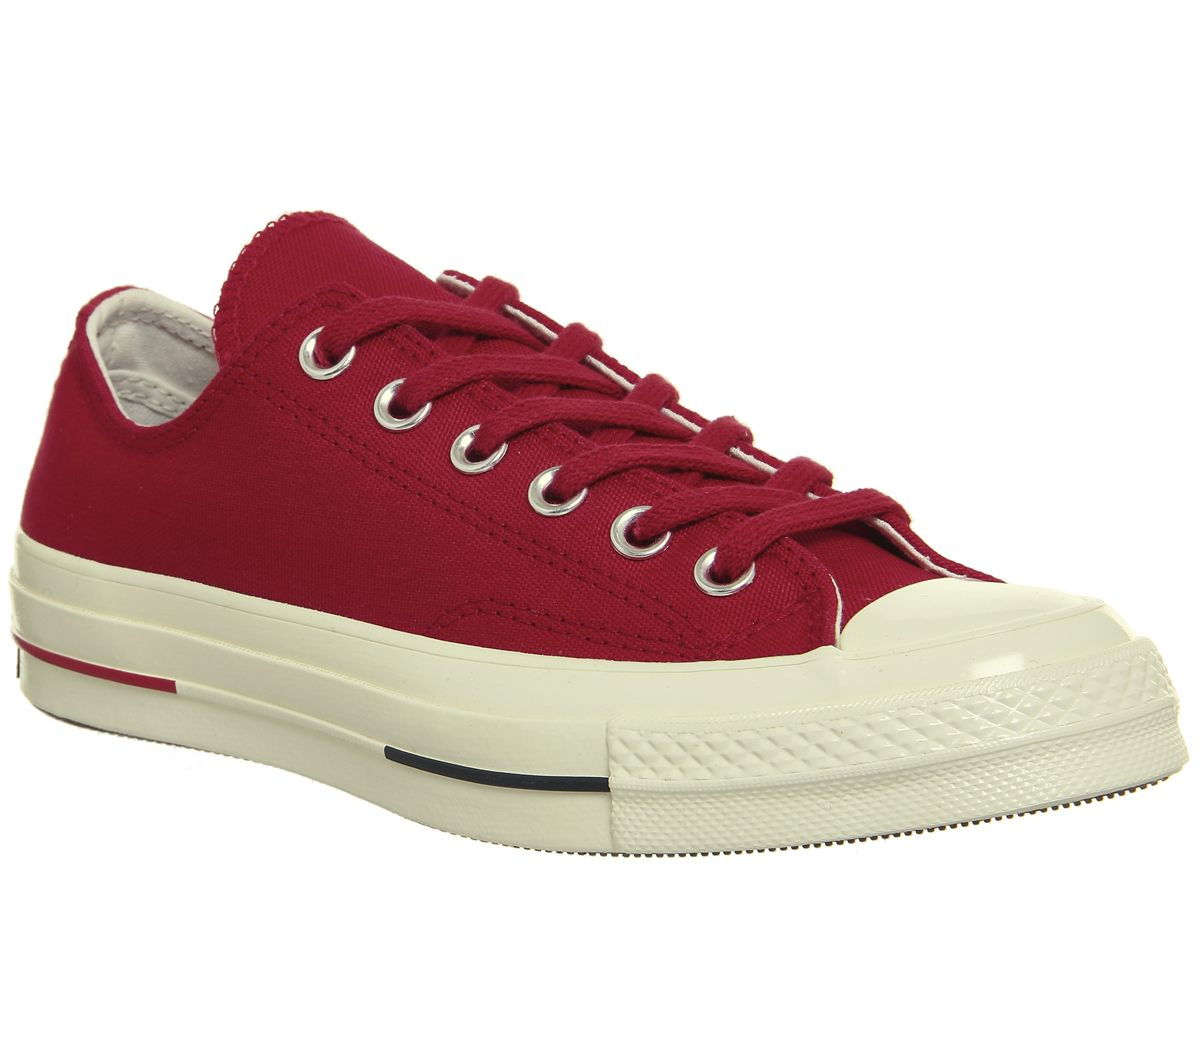 3e8dd00b156df1 Converse All Star Ox 70 s Gym Red Navy - His trainers